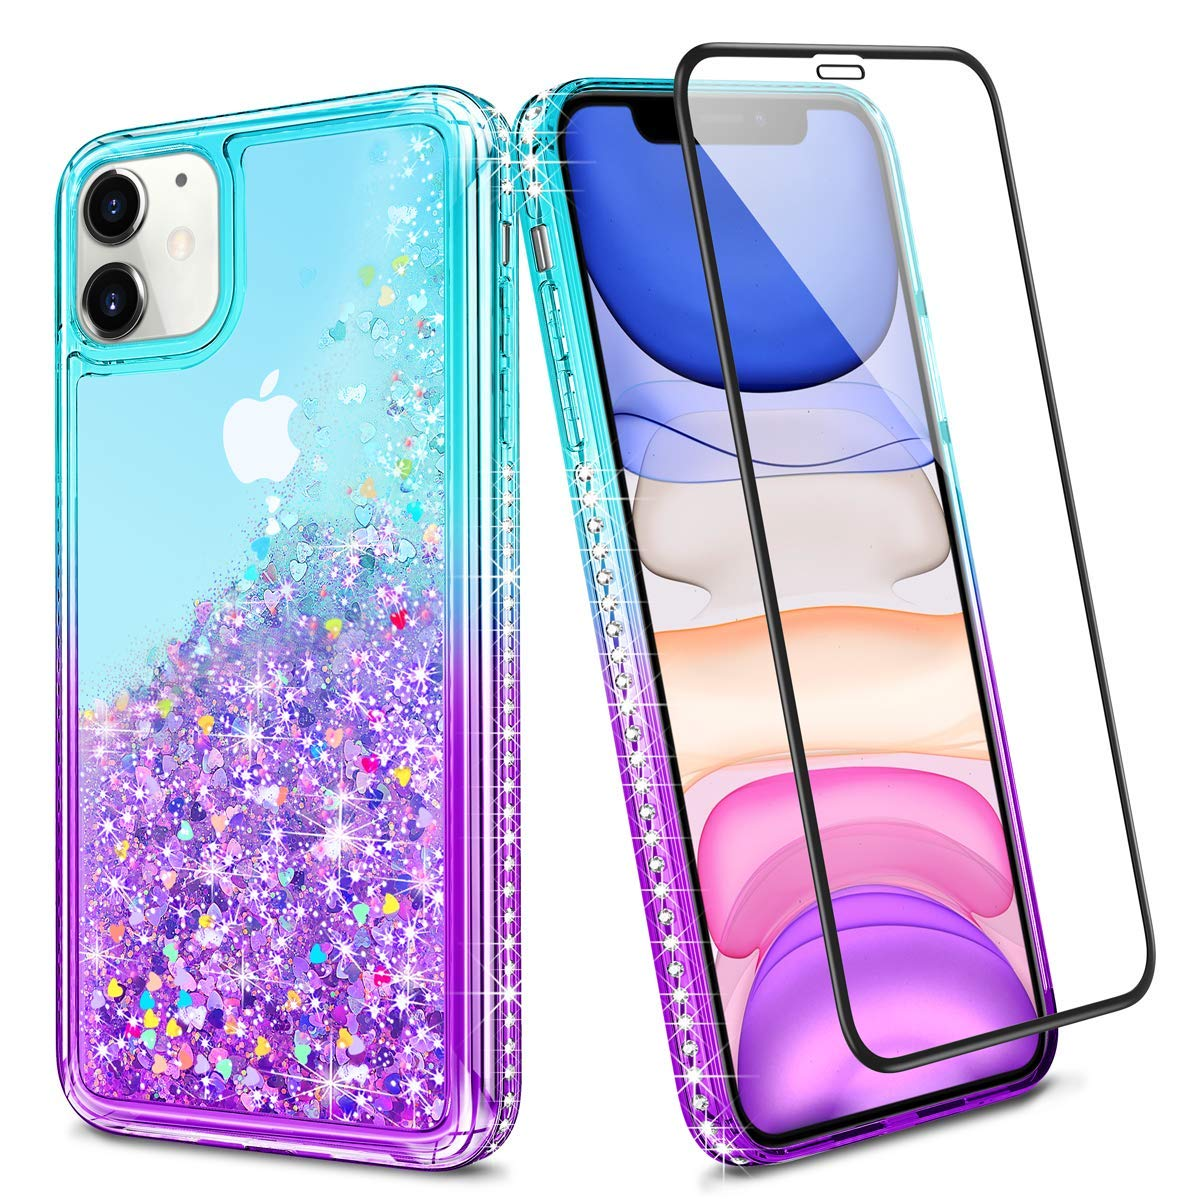 Wollony for iPhone 11 Case Glitter Girly Sparkle Bling Liquid Clear 360 Full Body Protection Cover with Screen Protector Slim Durable Hybrid Shockproof Diamond Case for iPhone 11 6.1inch Lake-Purple